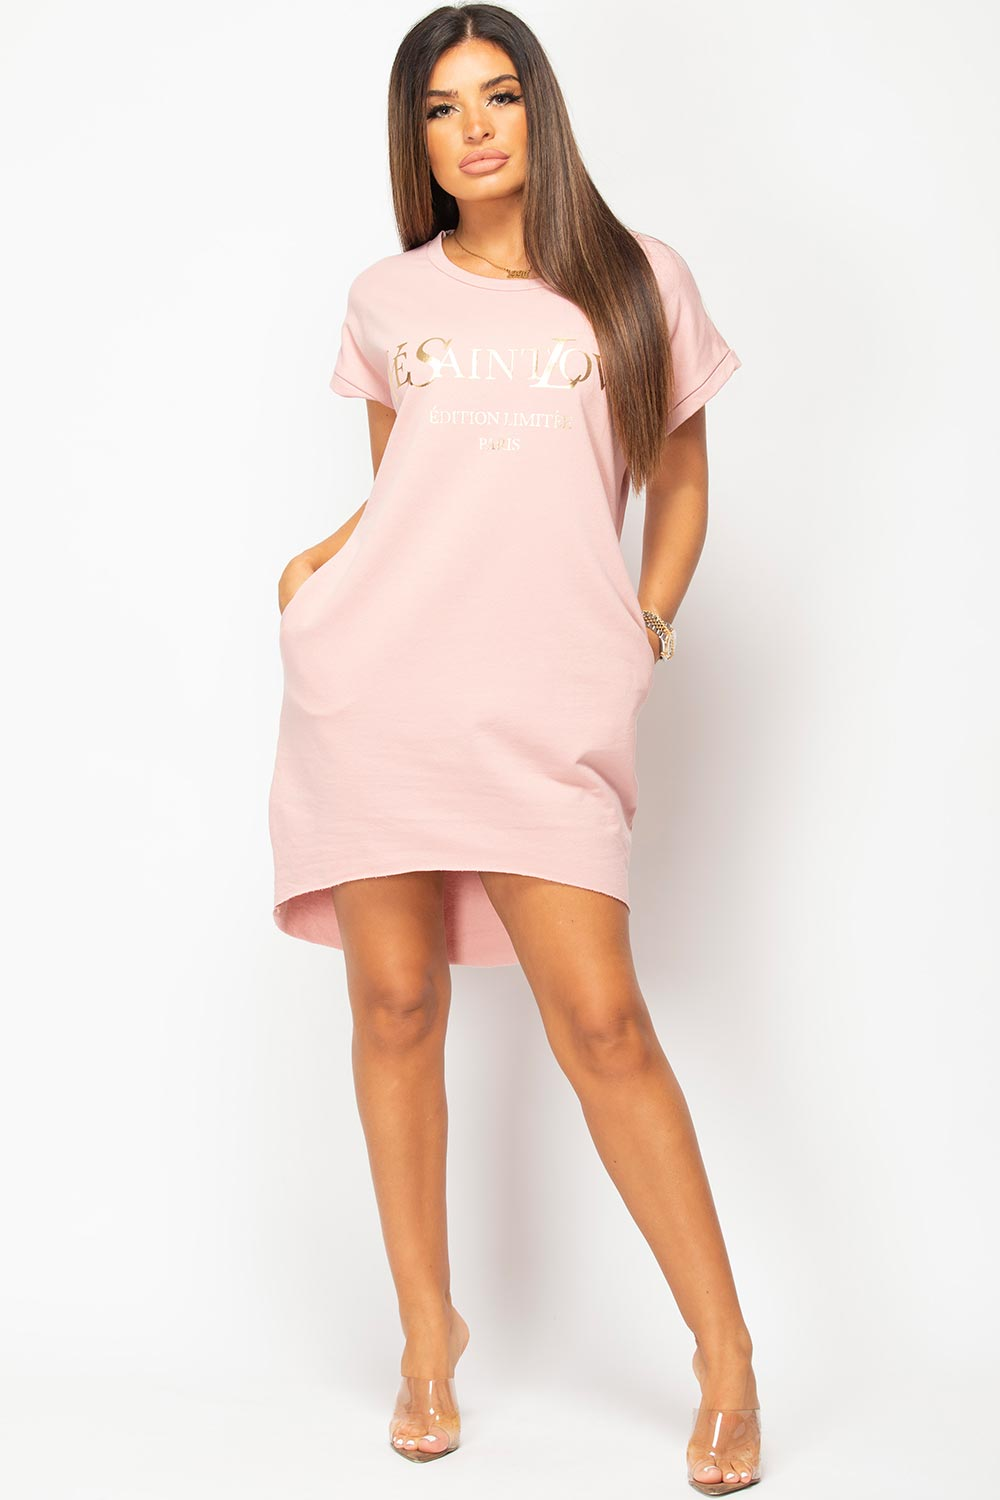 pink ye saint love t shirt dress